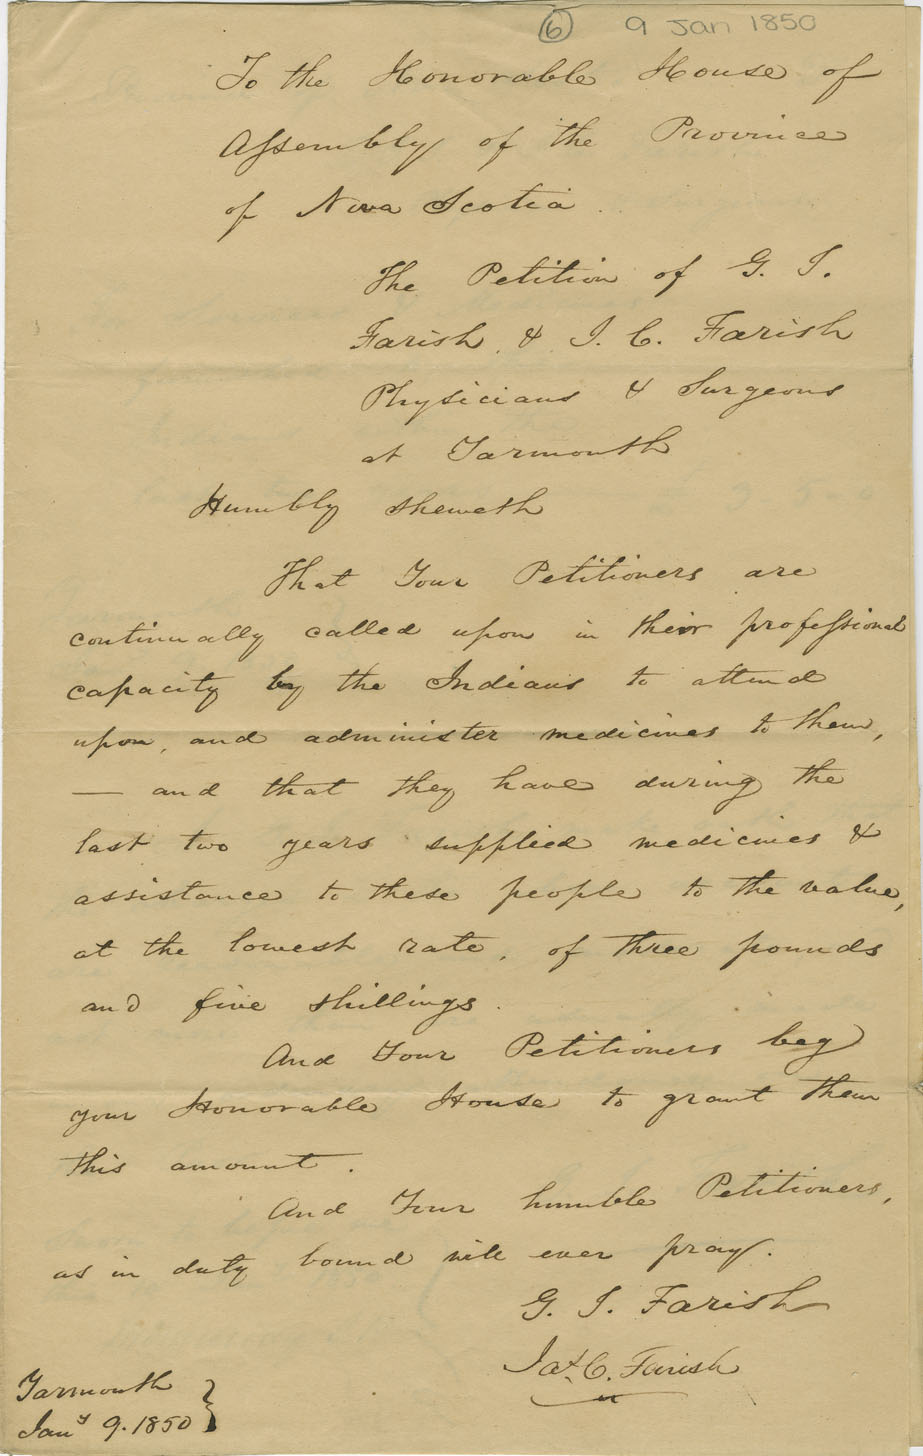 Petition of G.J. Farish and J.C. Farish, physicians of Yarmouth, for remuneration for medical attendance on the Mi'kmaq.